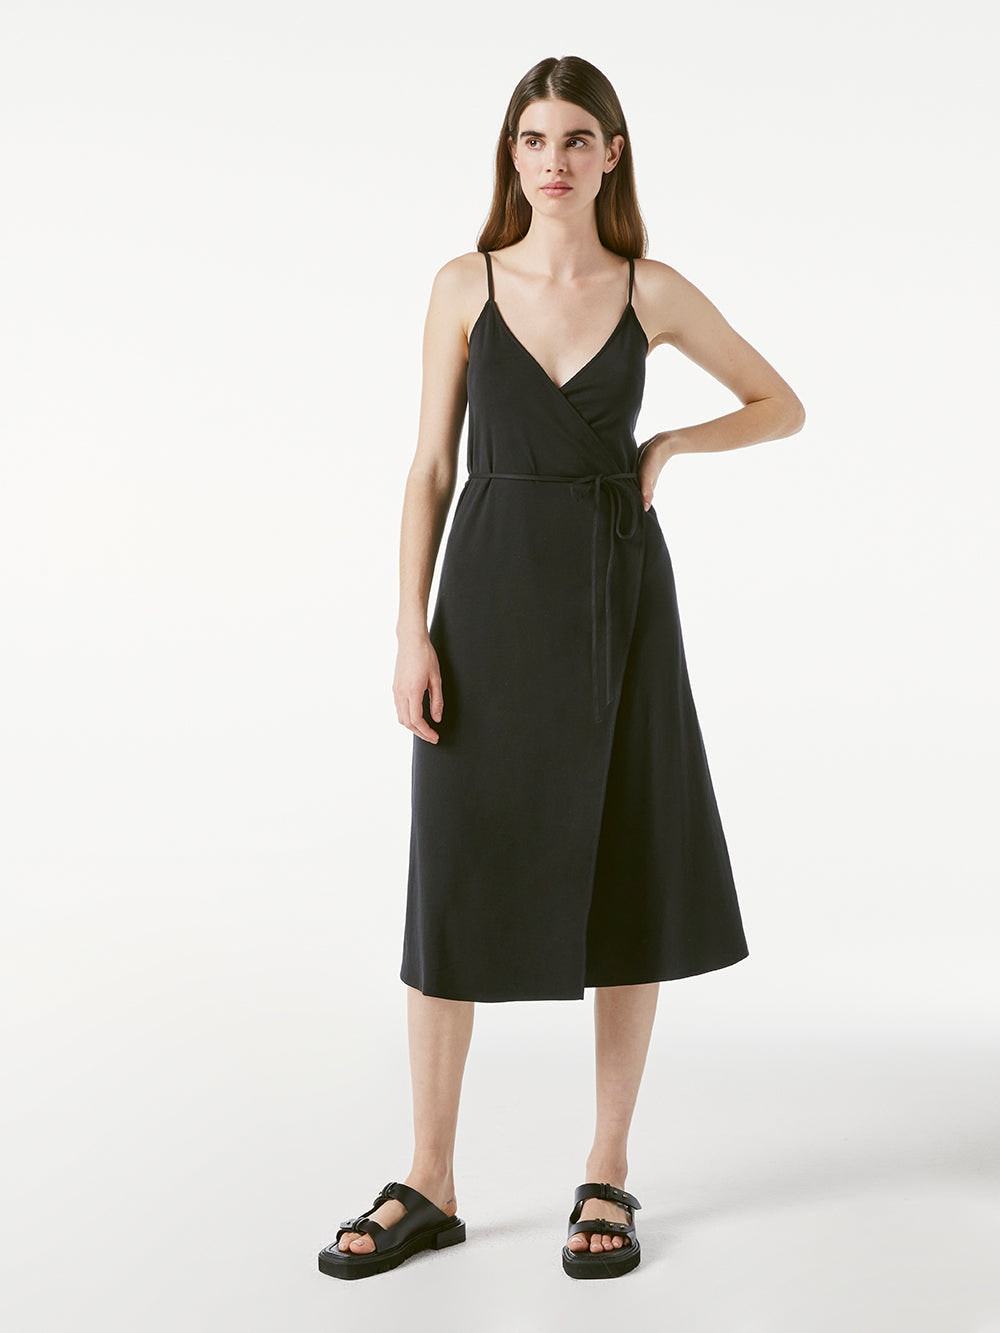 dress front full body view